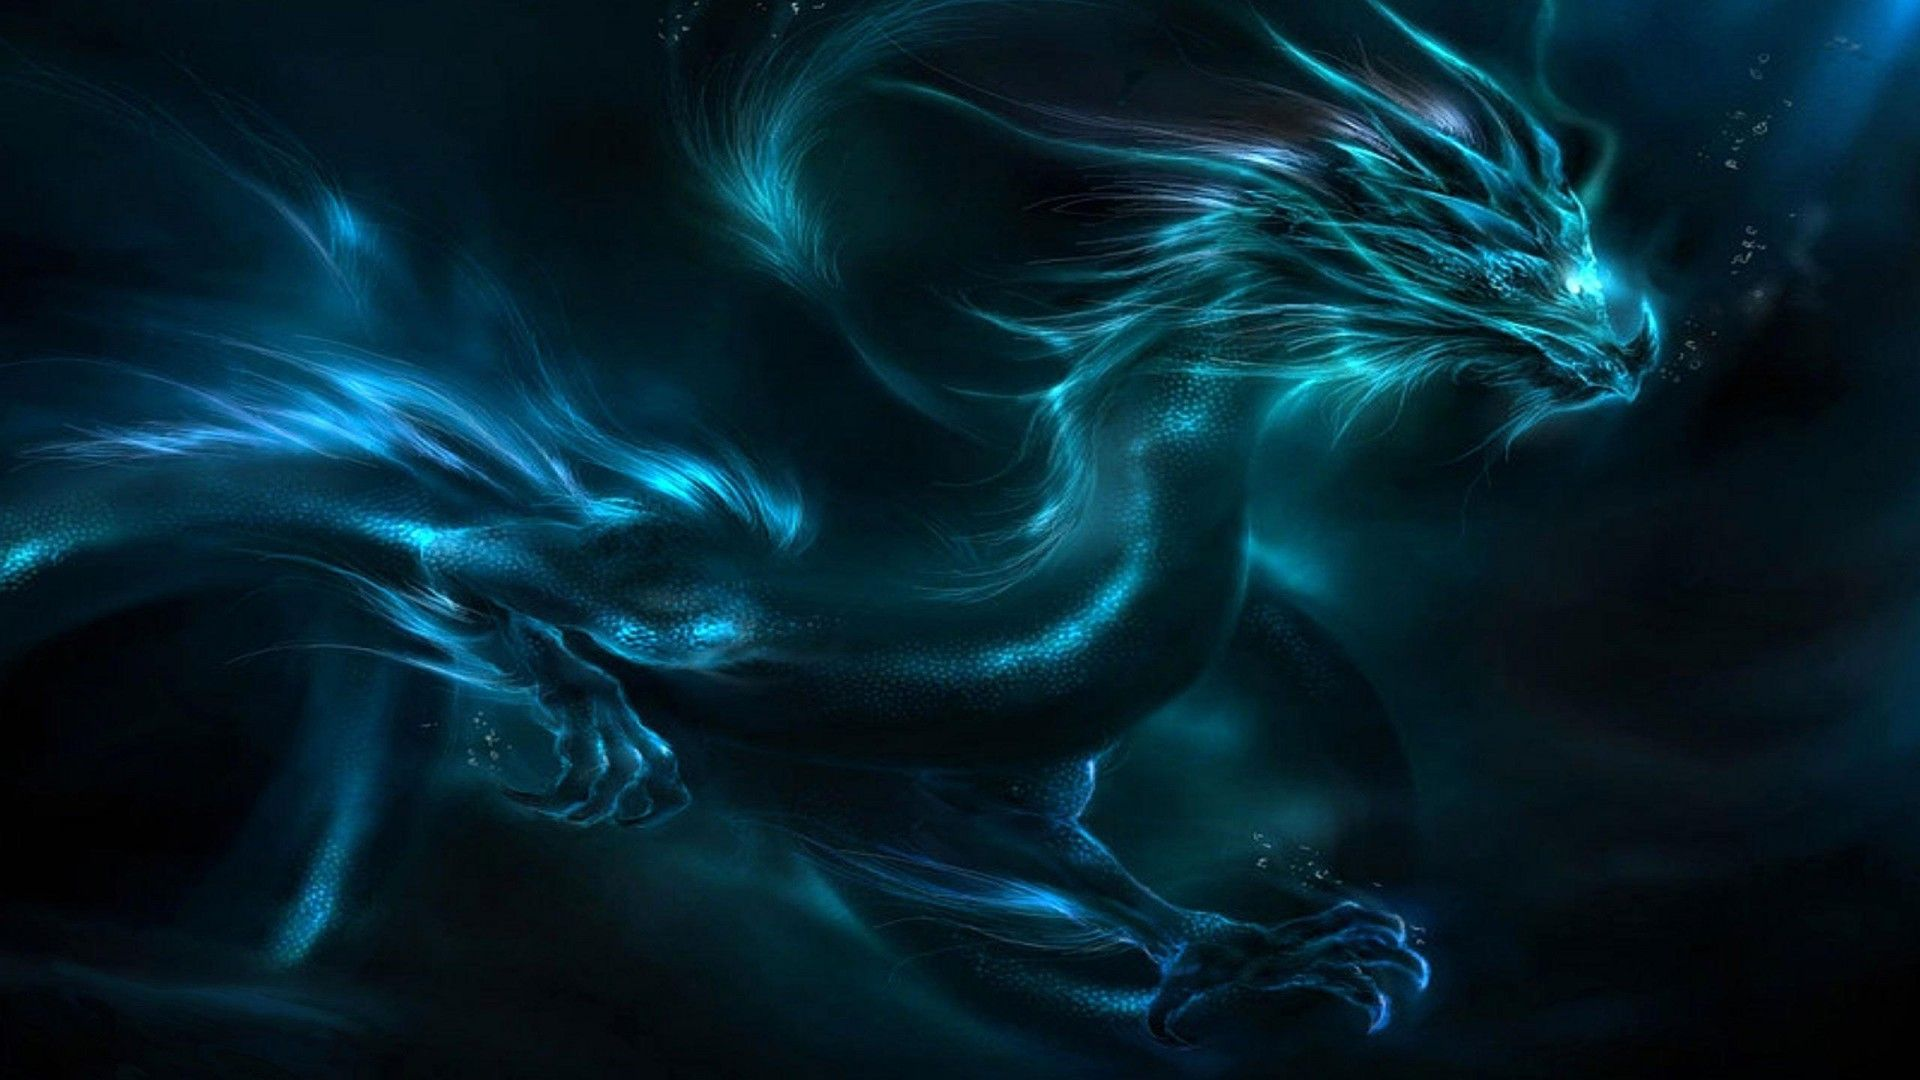 Beautiful Dragon Wallpaper 1920x1080 Laptop Dragon Pictures Dragon Images Blue Dragon